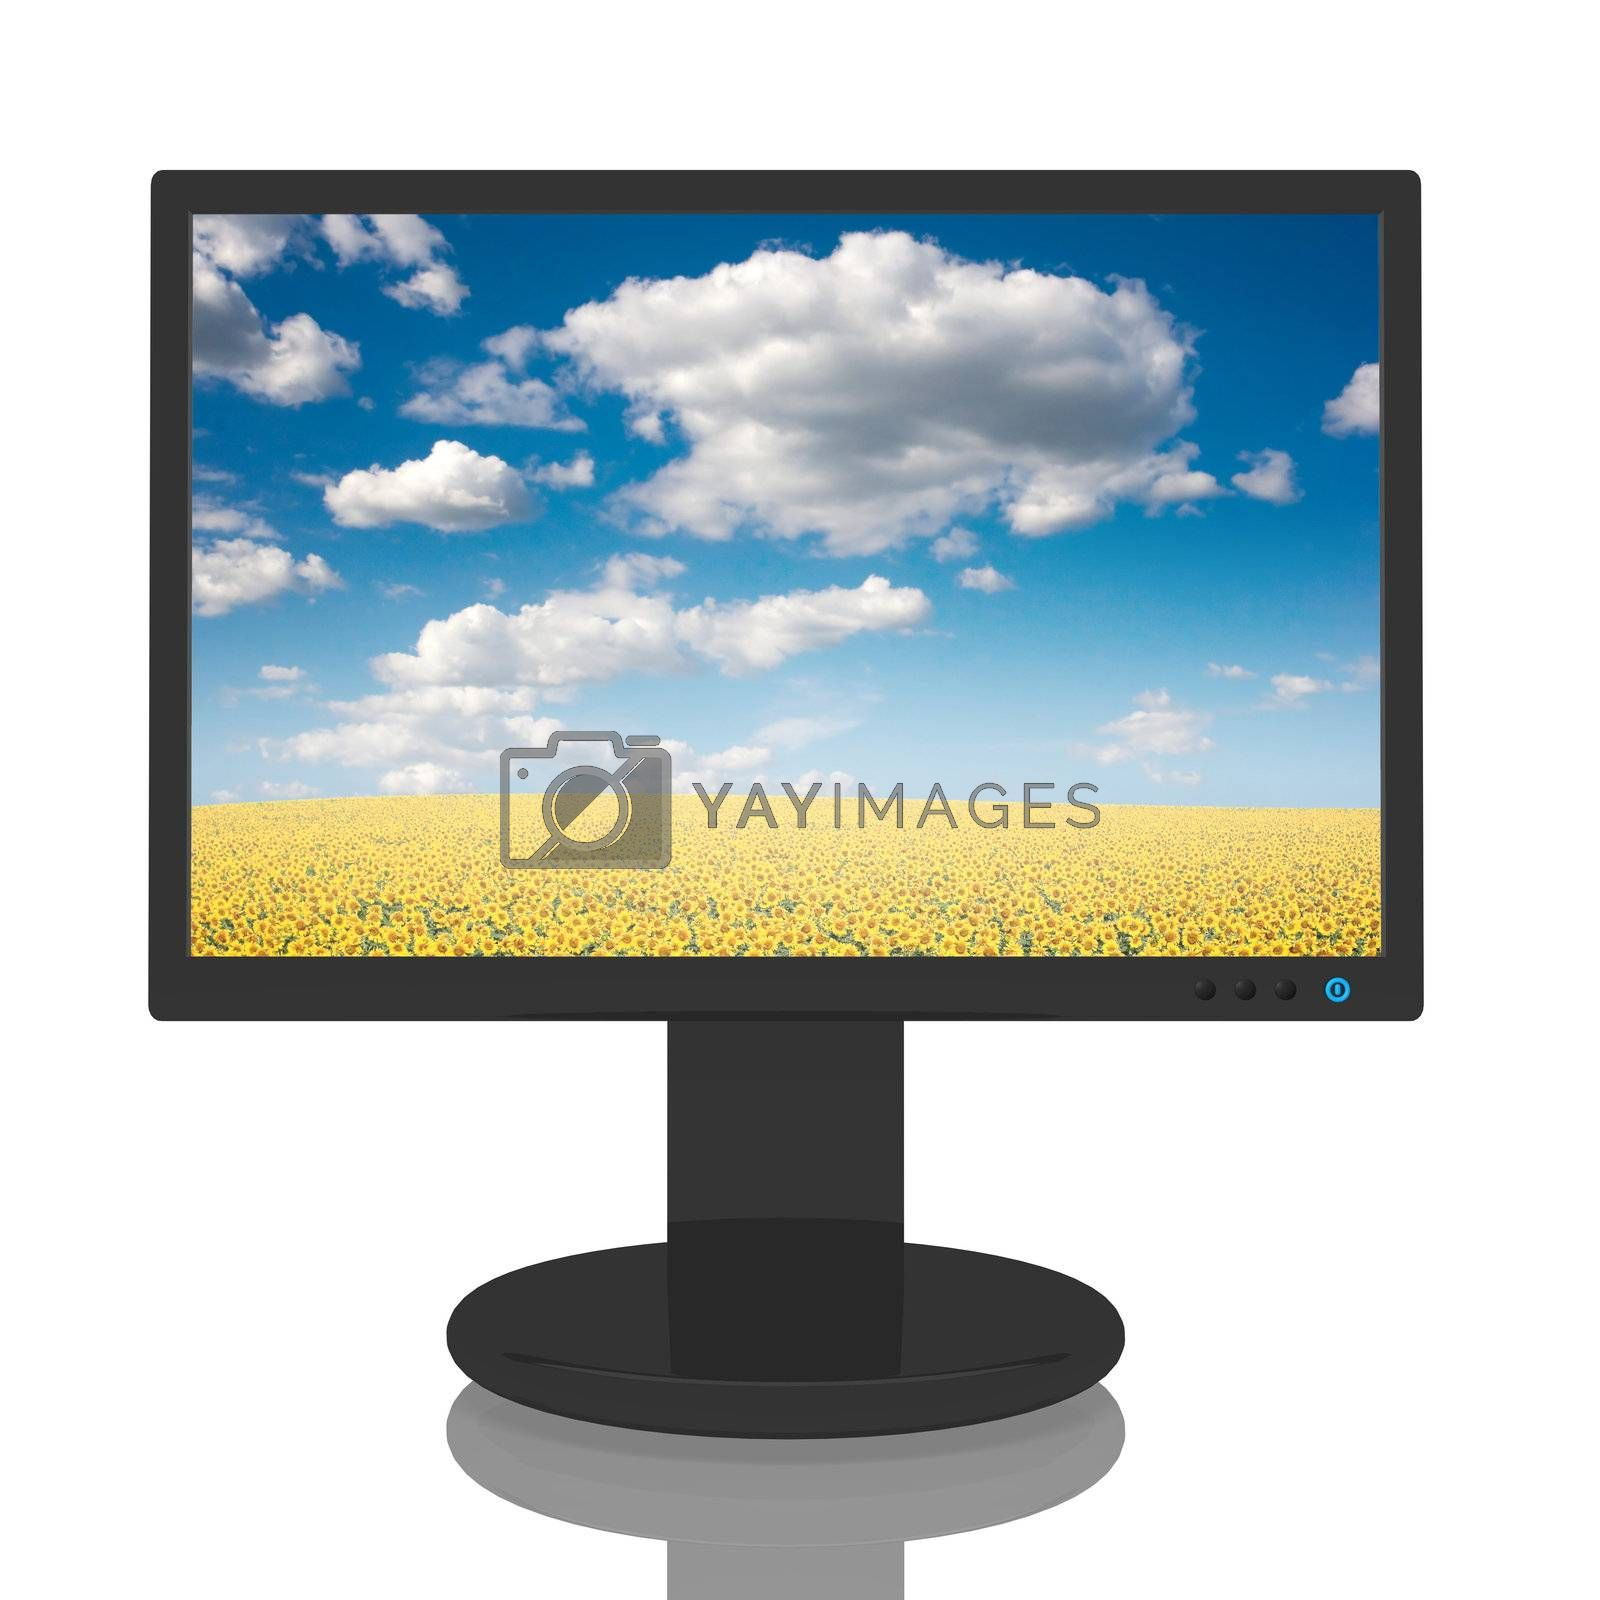 Computer monitor with a beautiful image of a field of sunflowers.